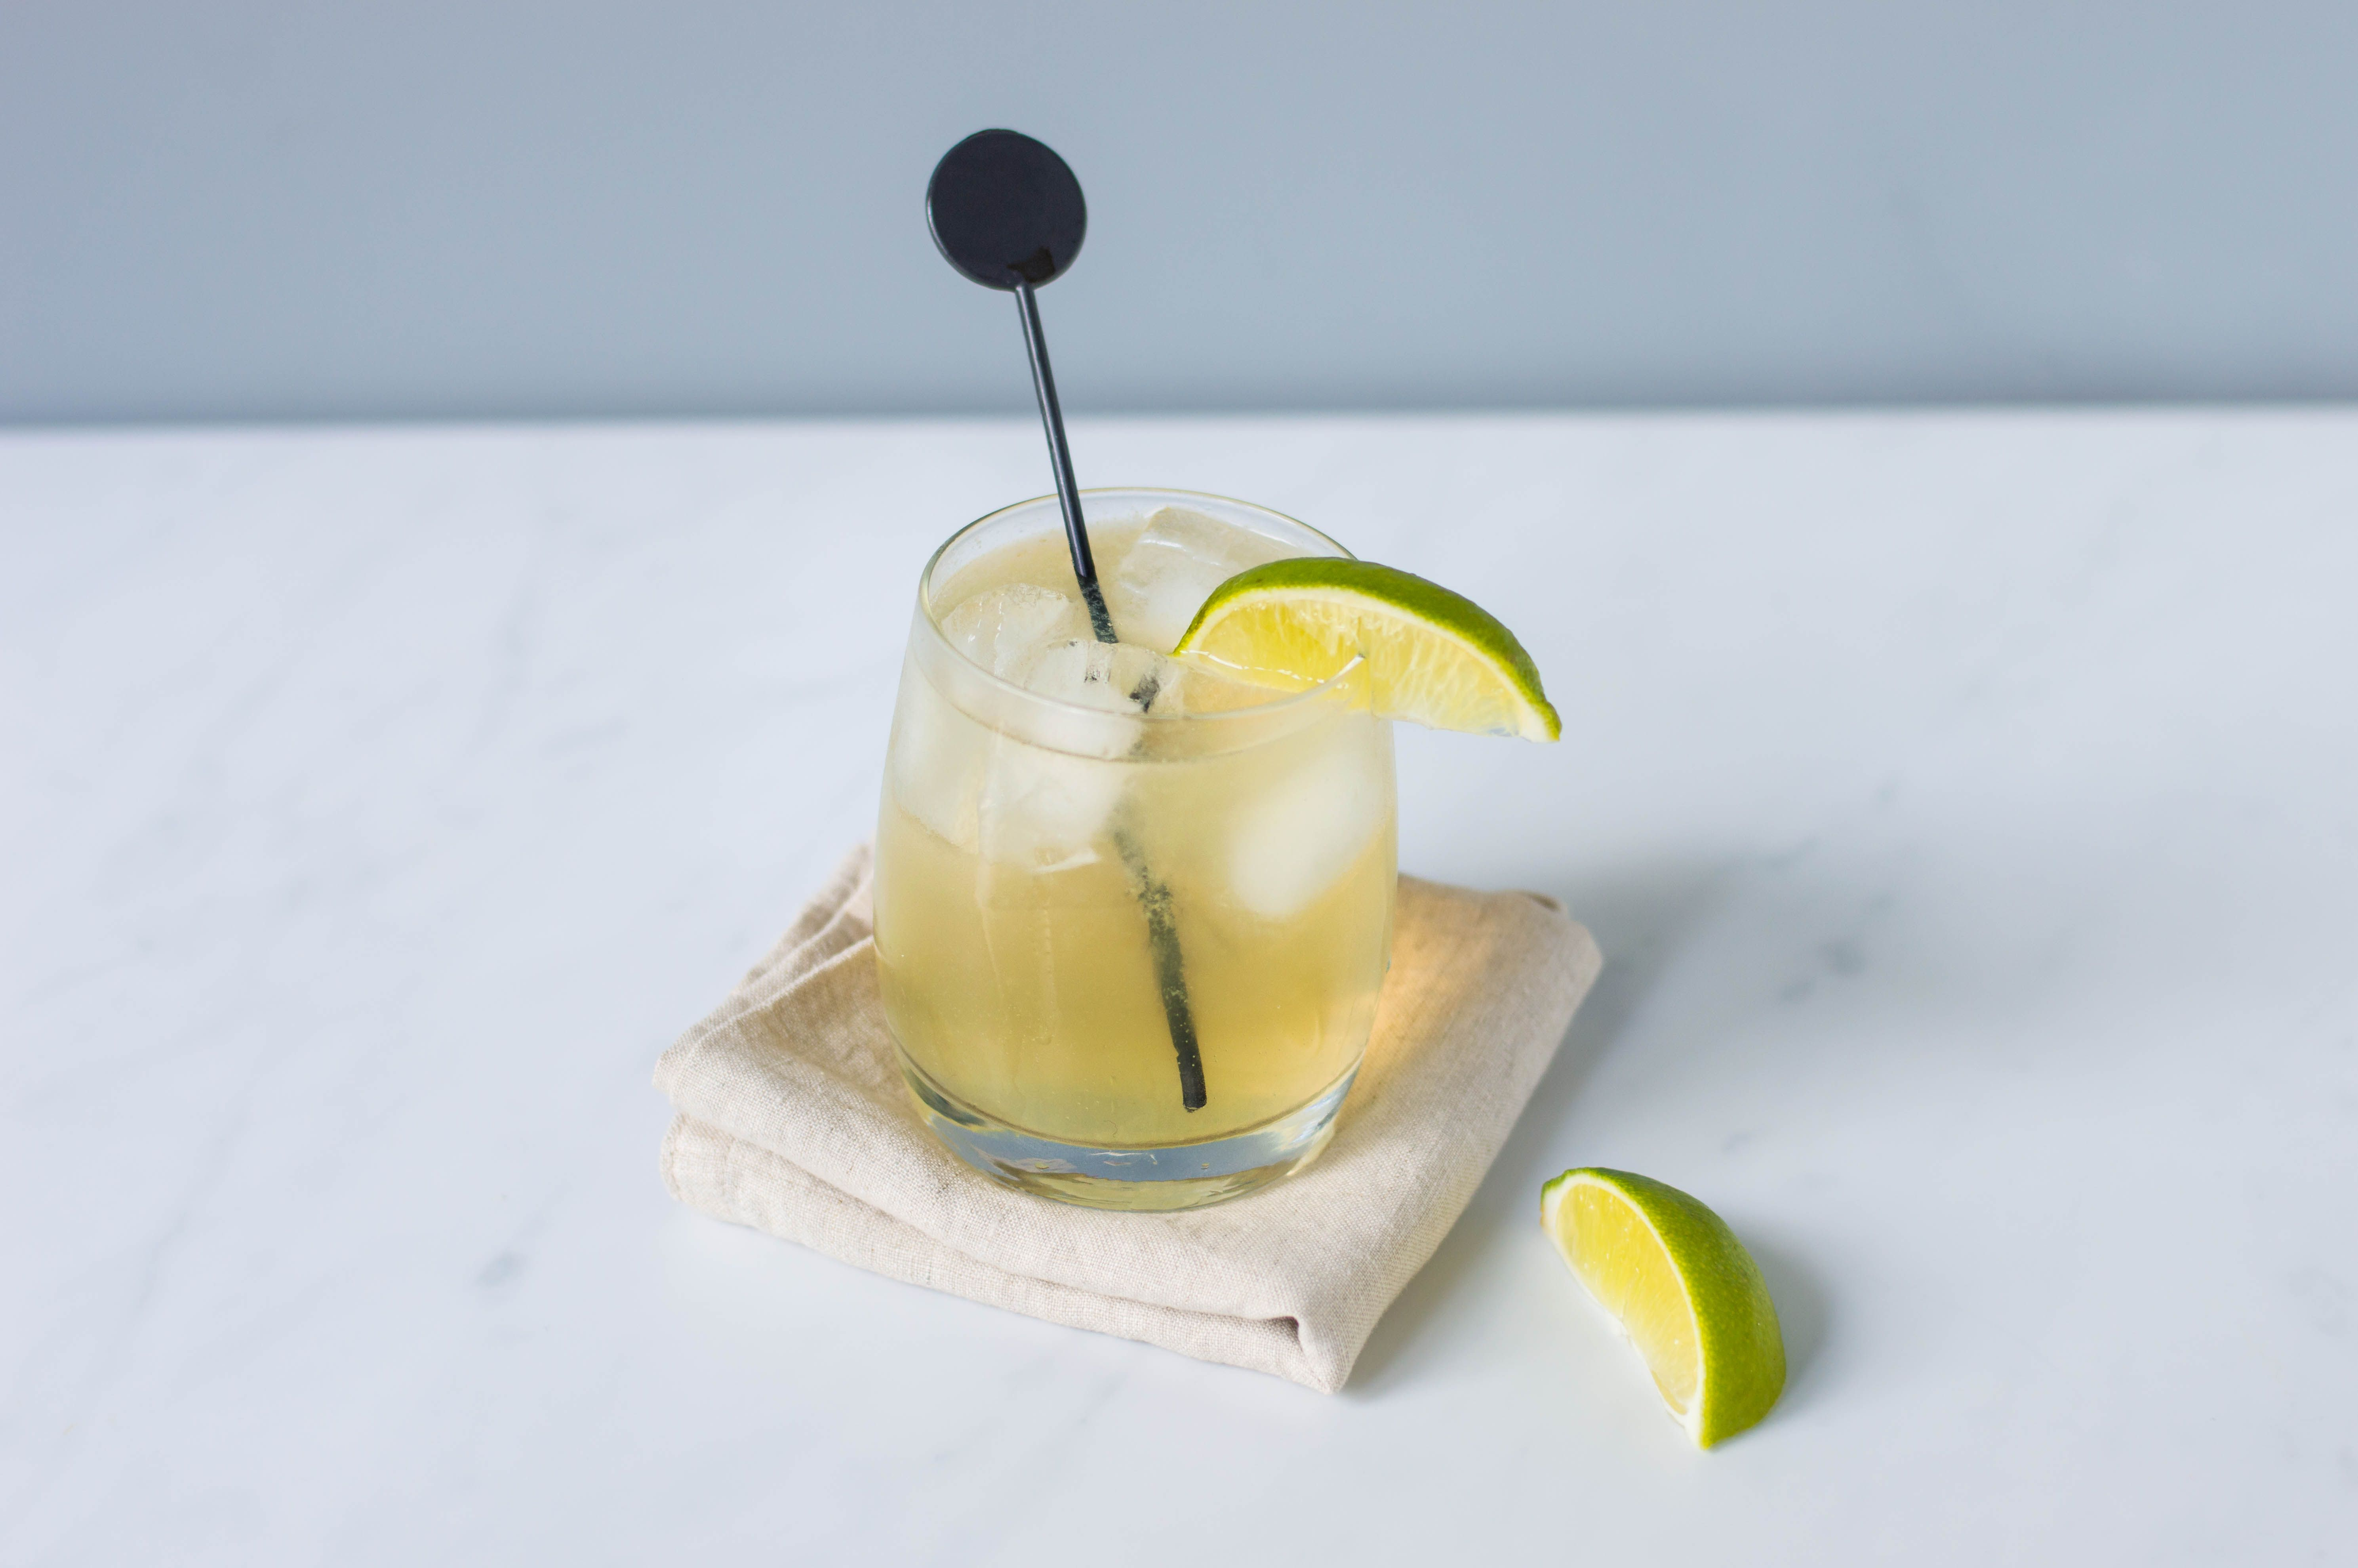 Foghorn with lime garnish and a stir stick